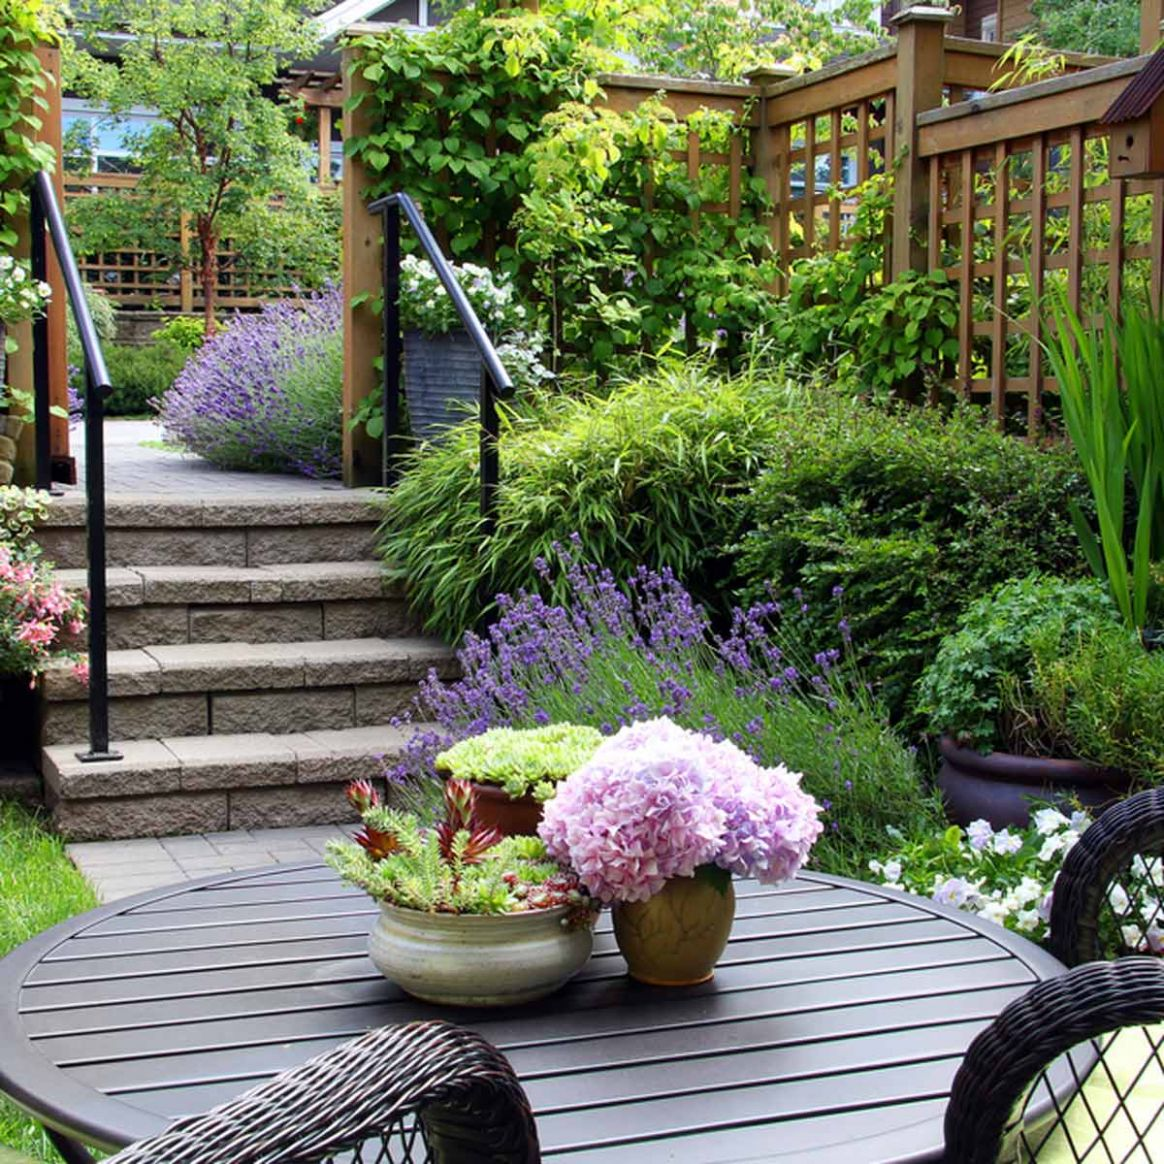 10 Small Yard Landscaping Ideas to Impress | Family Handyman - garden ideas small space